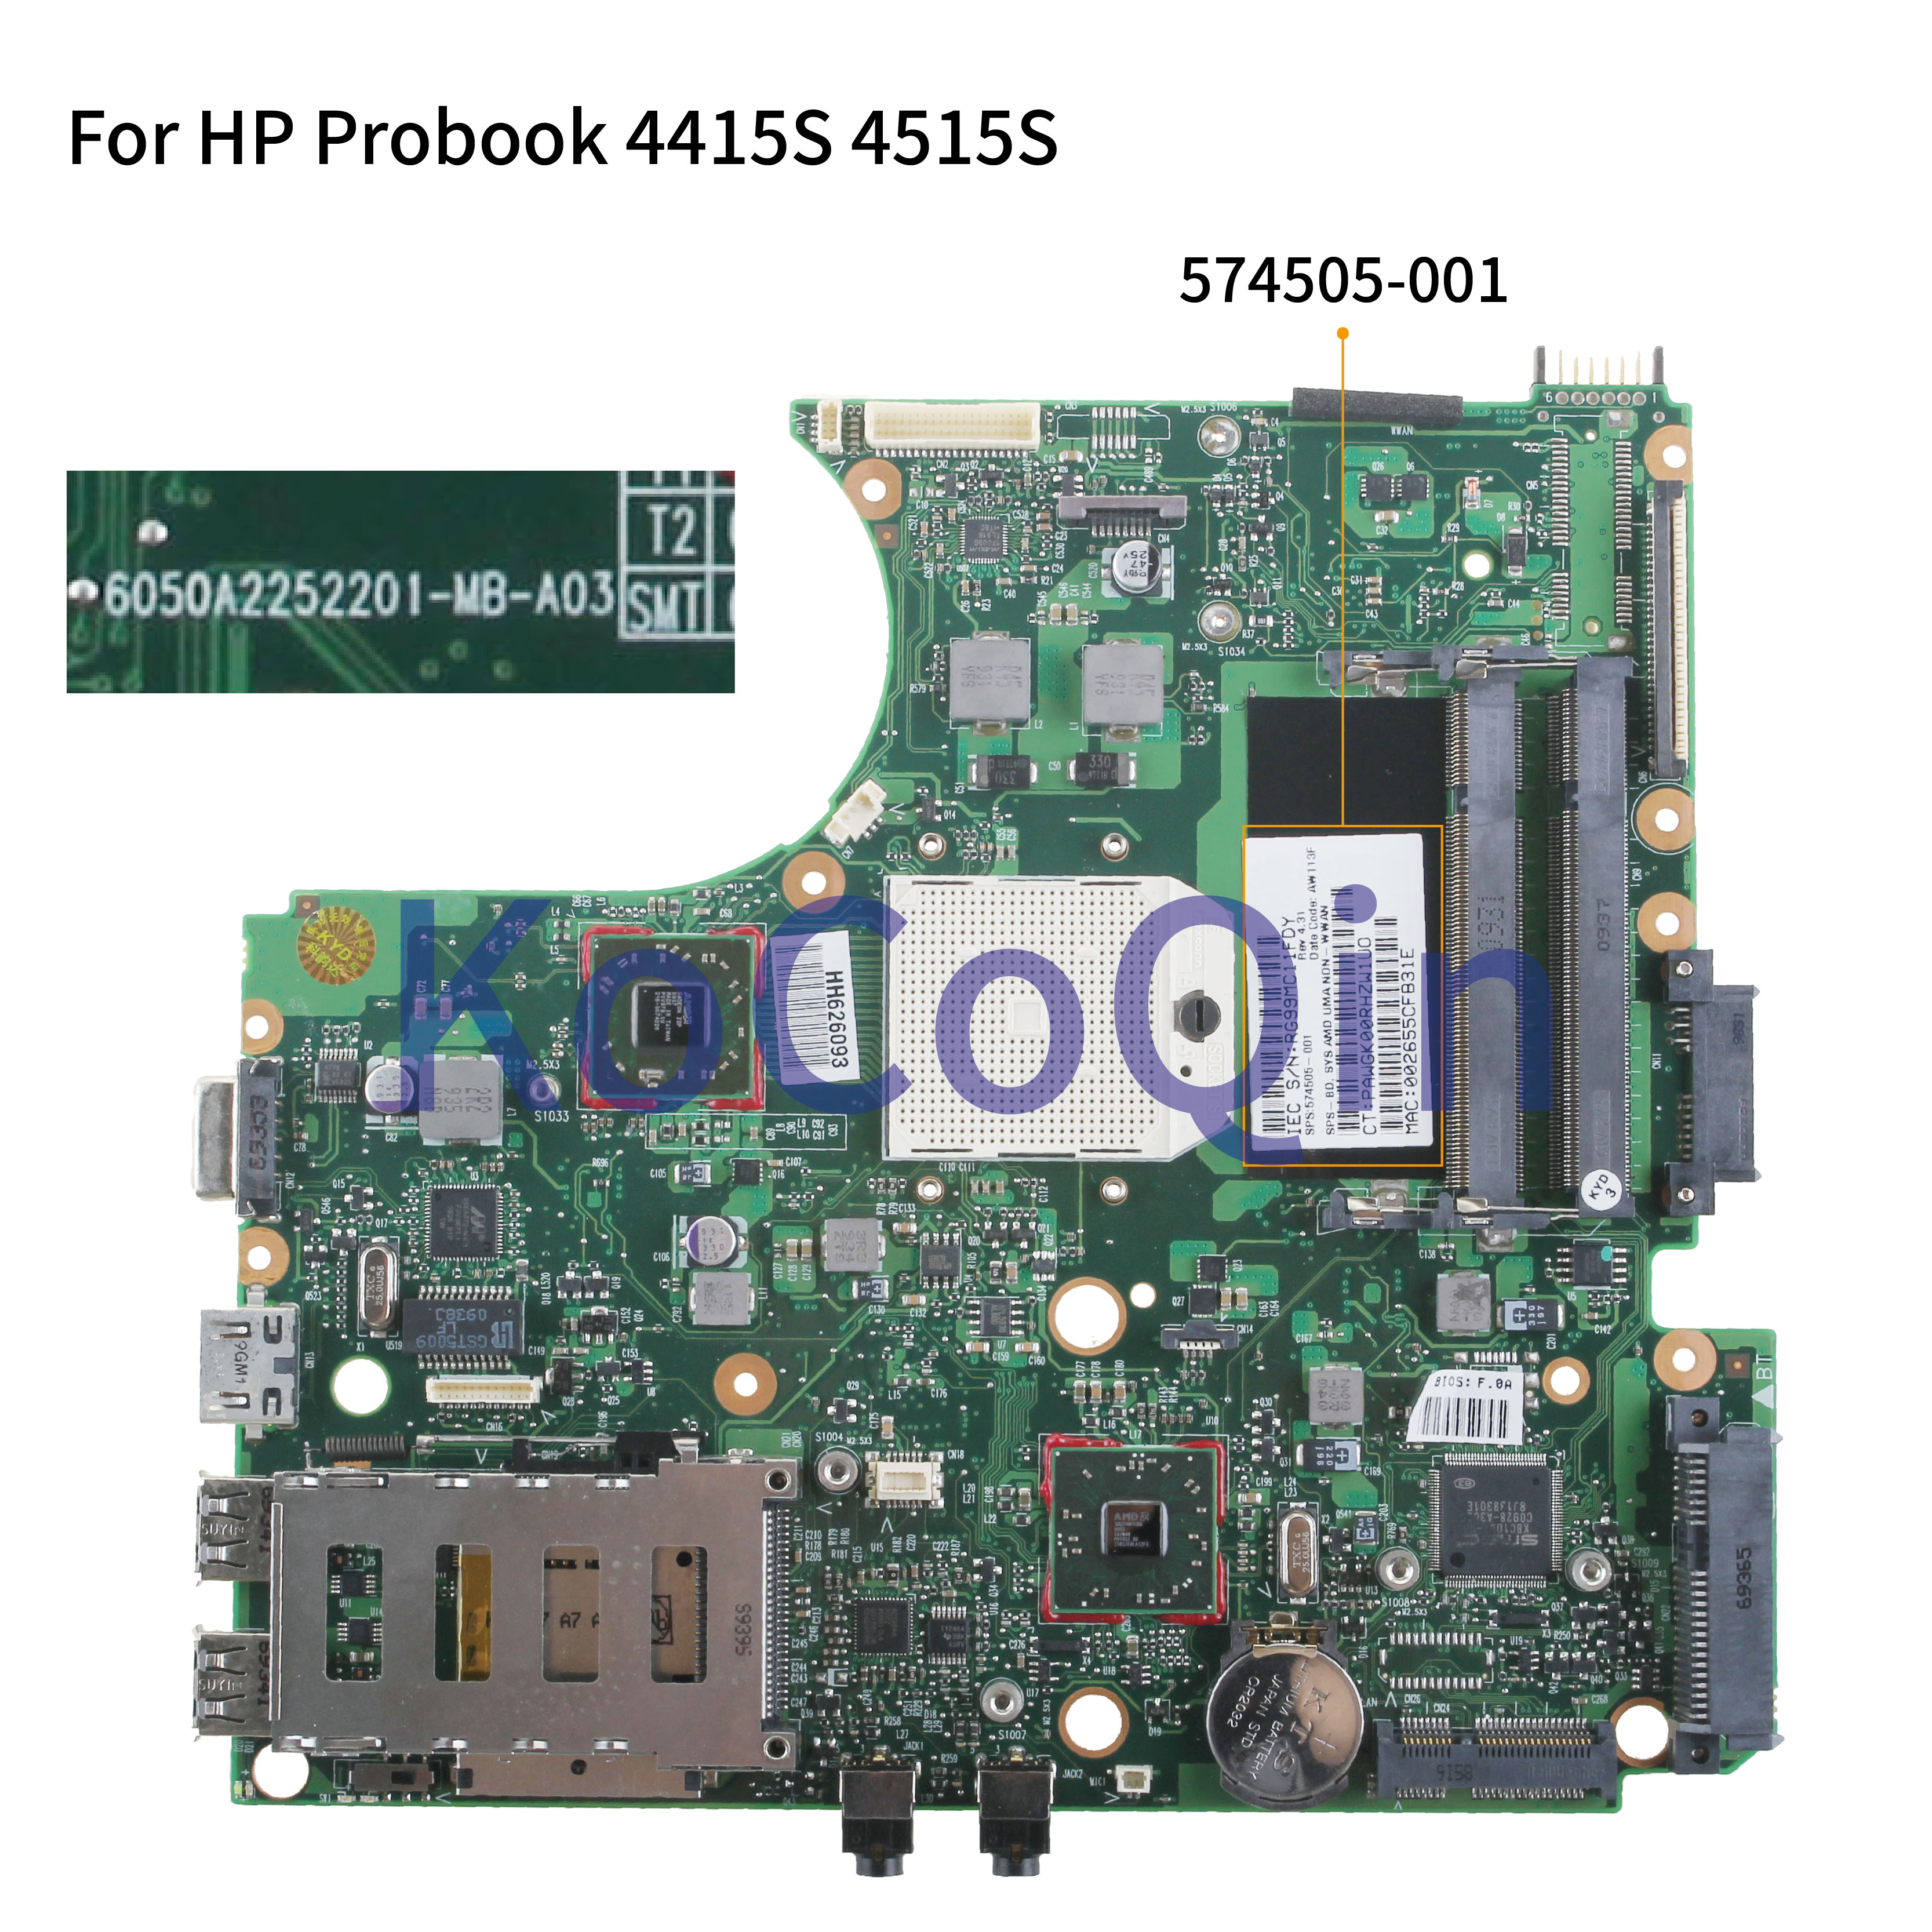 KoCoQin Laptop Motherboard For HP Probook 4415S 4515S Mainboard 574505-001 574505-501 AMD